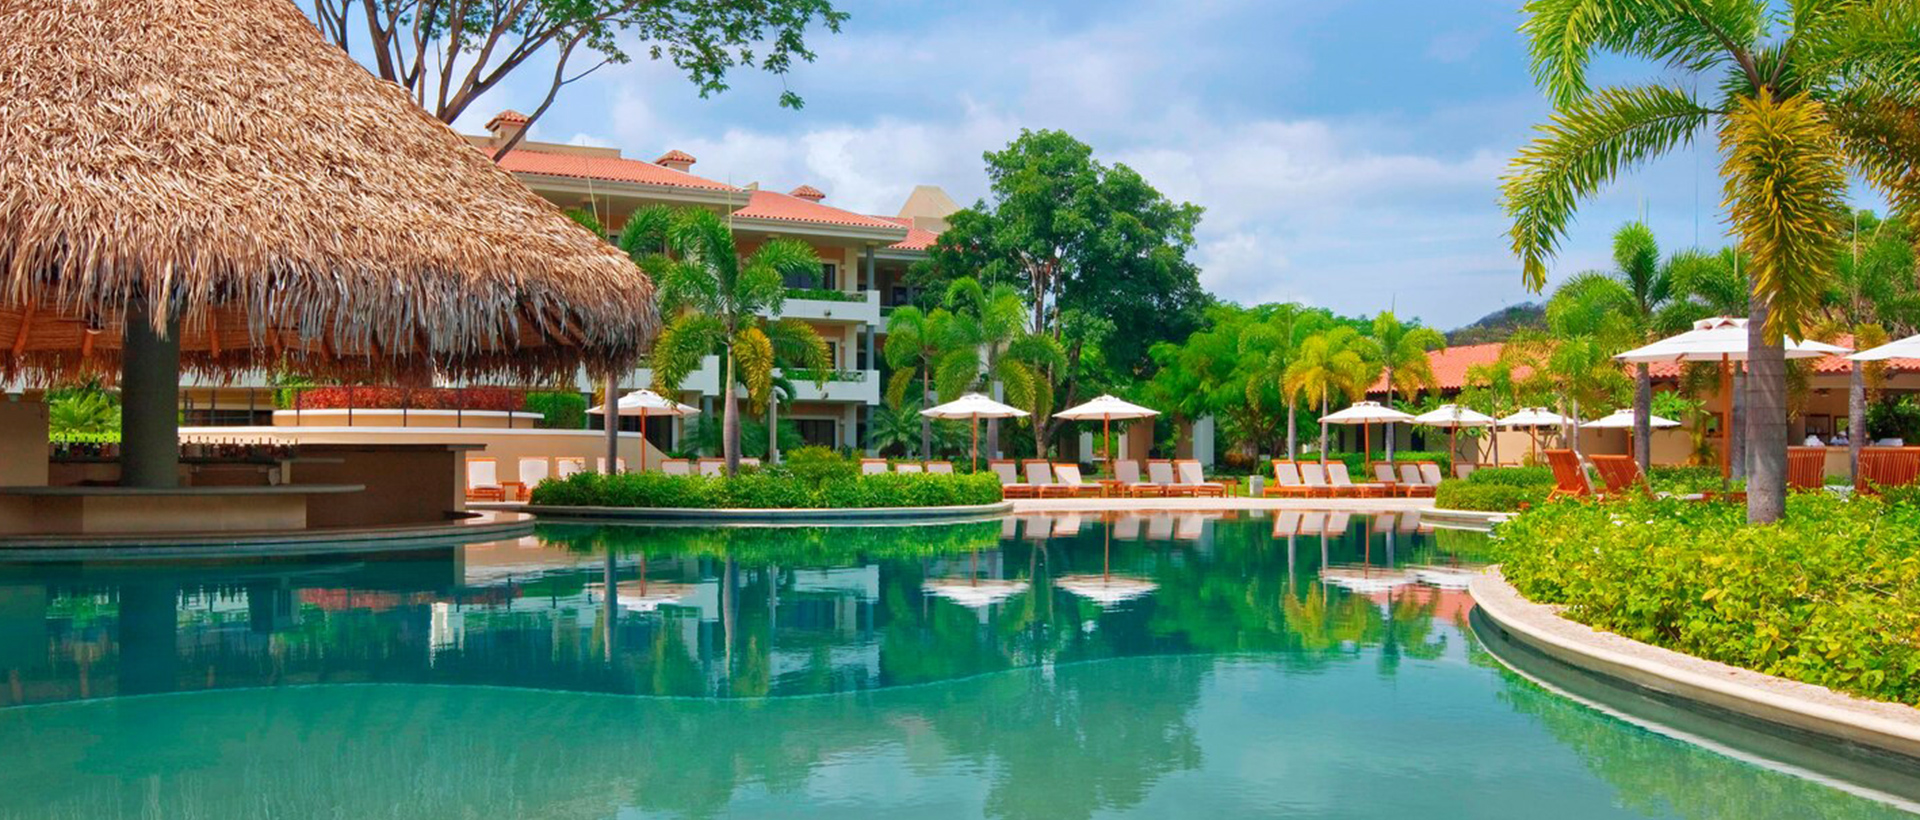 Beach Club Pool and Lounge at The Westin Reserva